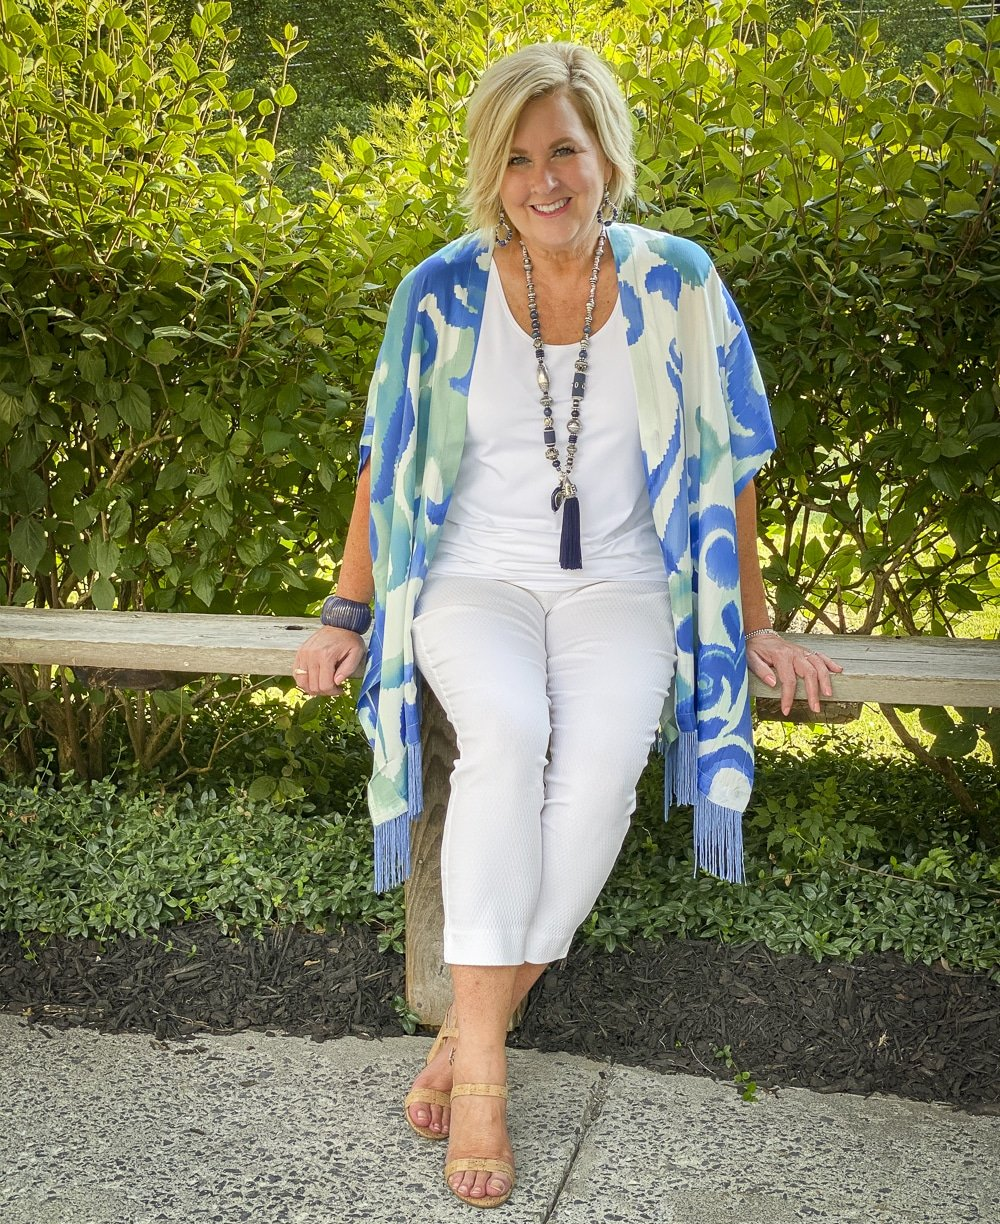 Fashion Blogger 50 Is Not Old is sitting down on a bench wearing a white tank top, white textured crop pants, and a colorful silk ruana from Chicos with a long navy necklace and bamboo heels